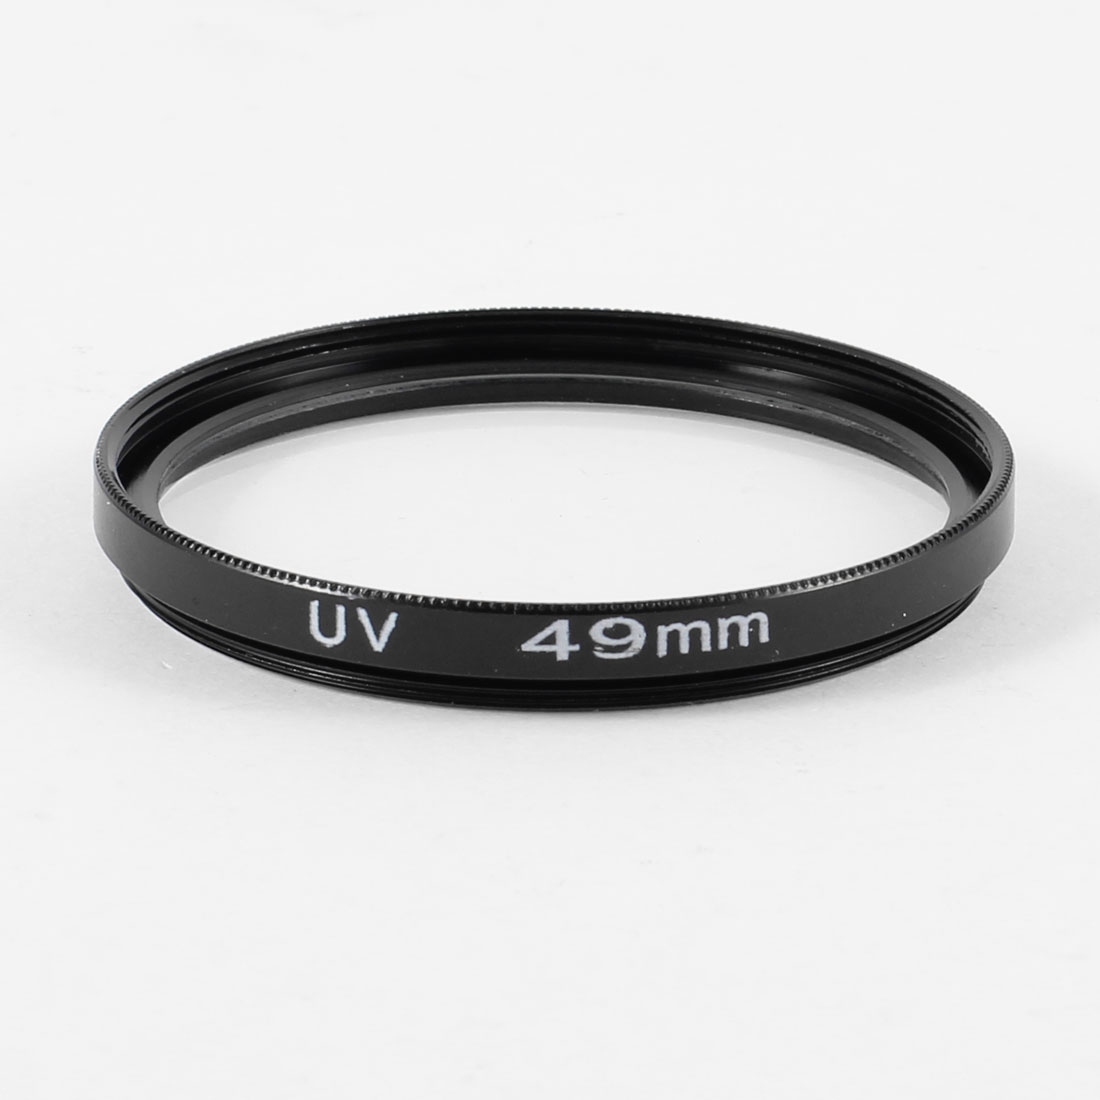 Digital Camera 49mm Multi Coated Protector Ultra-Violet UV Lens Filter Black